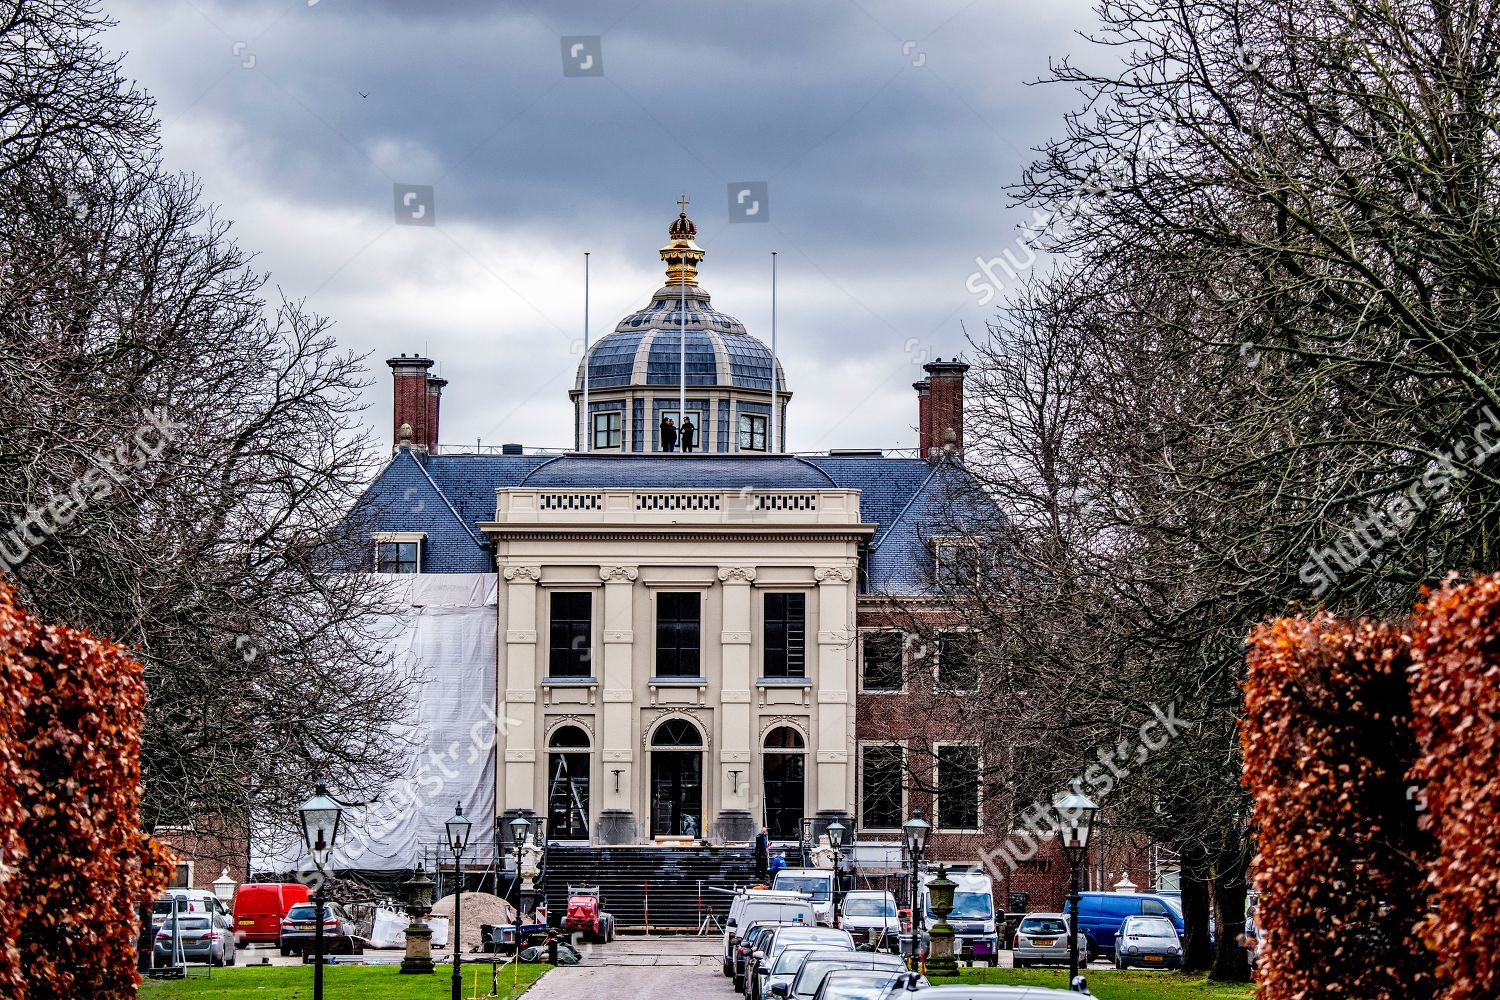 Renovation work huis ten bosch palace hague editorial for Huis ten bosch hague